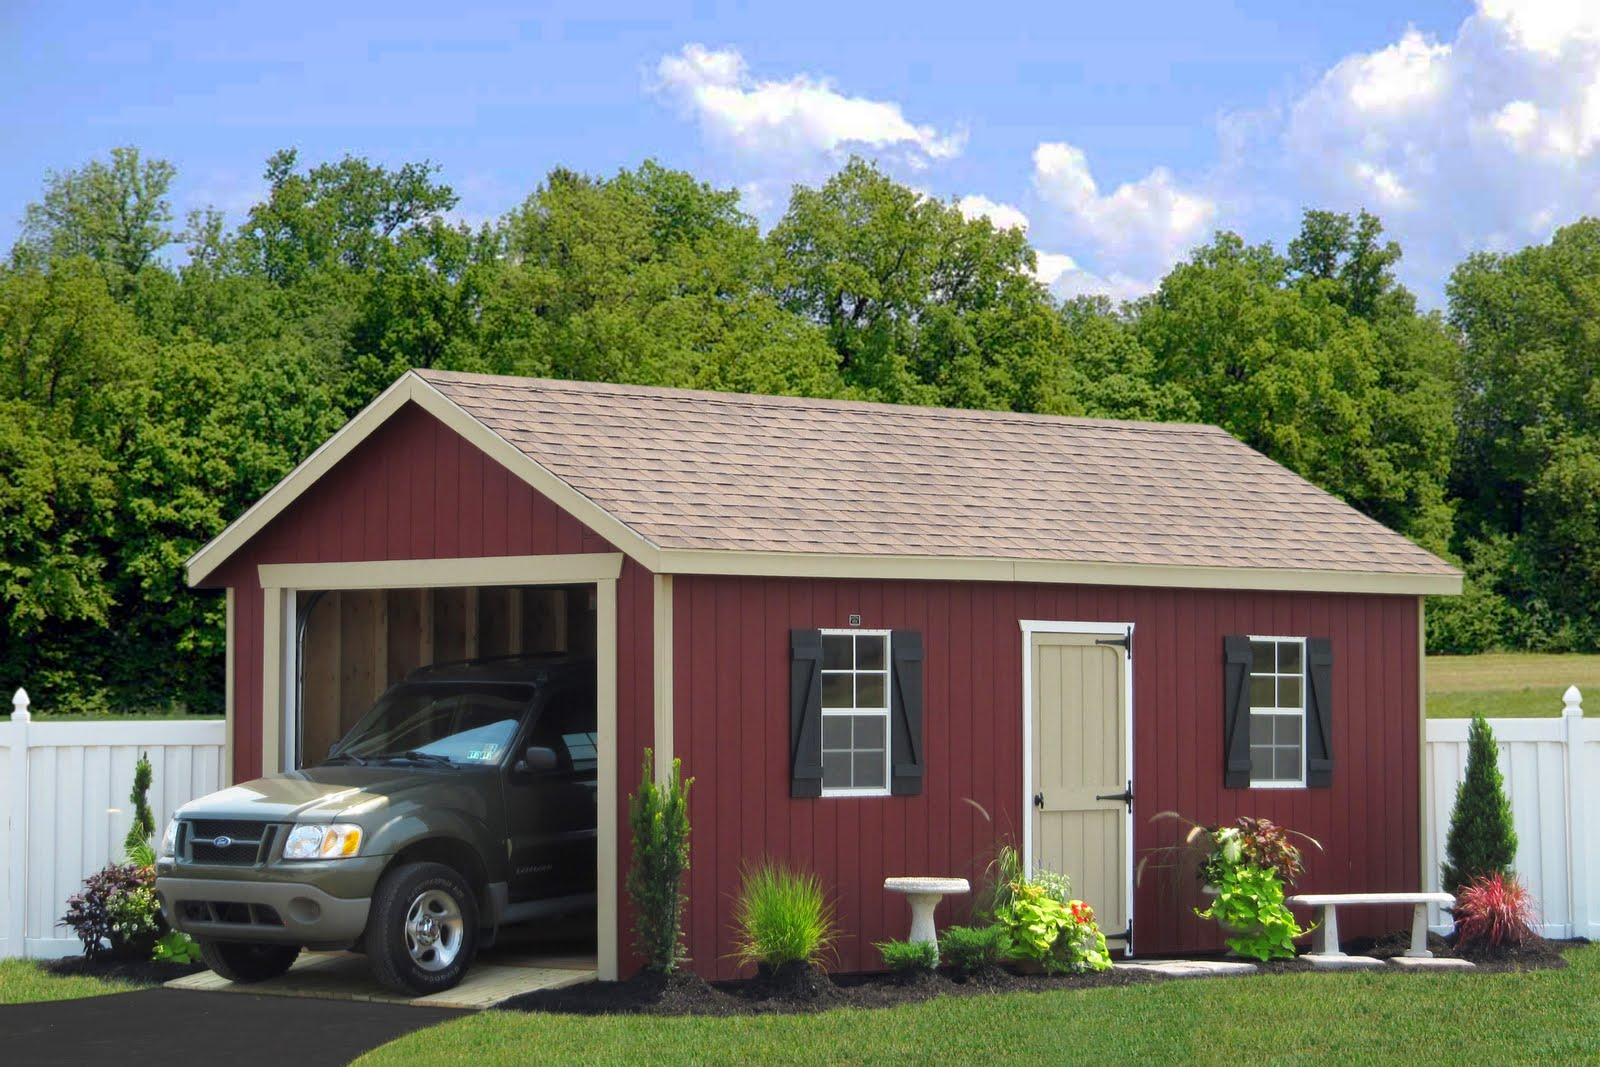 Wood Car Garage : Bels wood shed new york